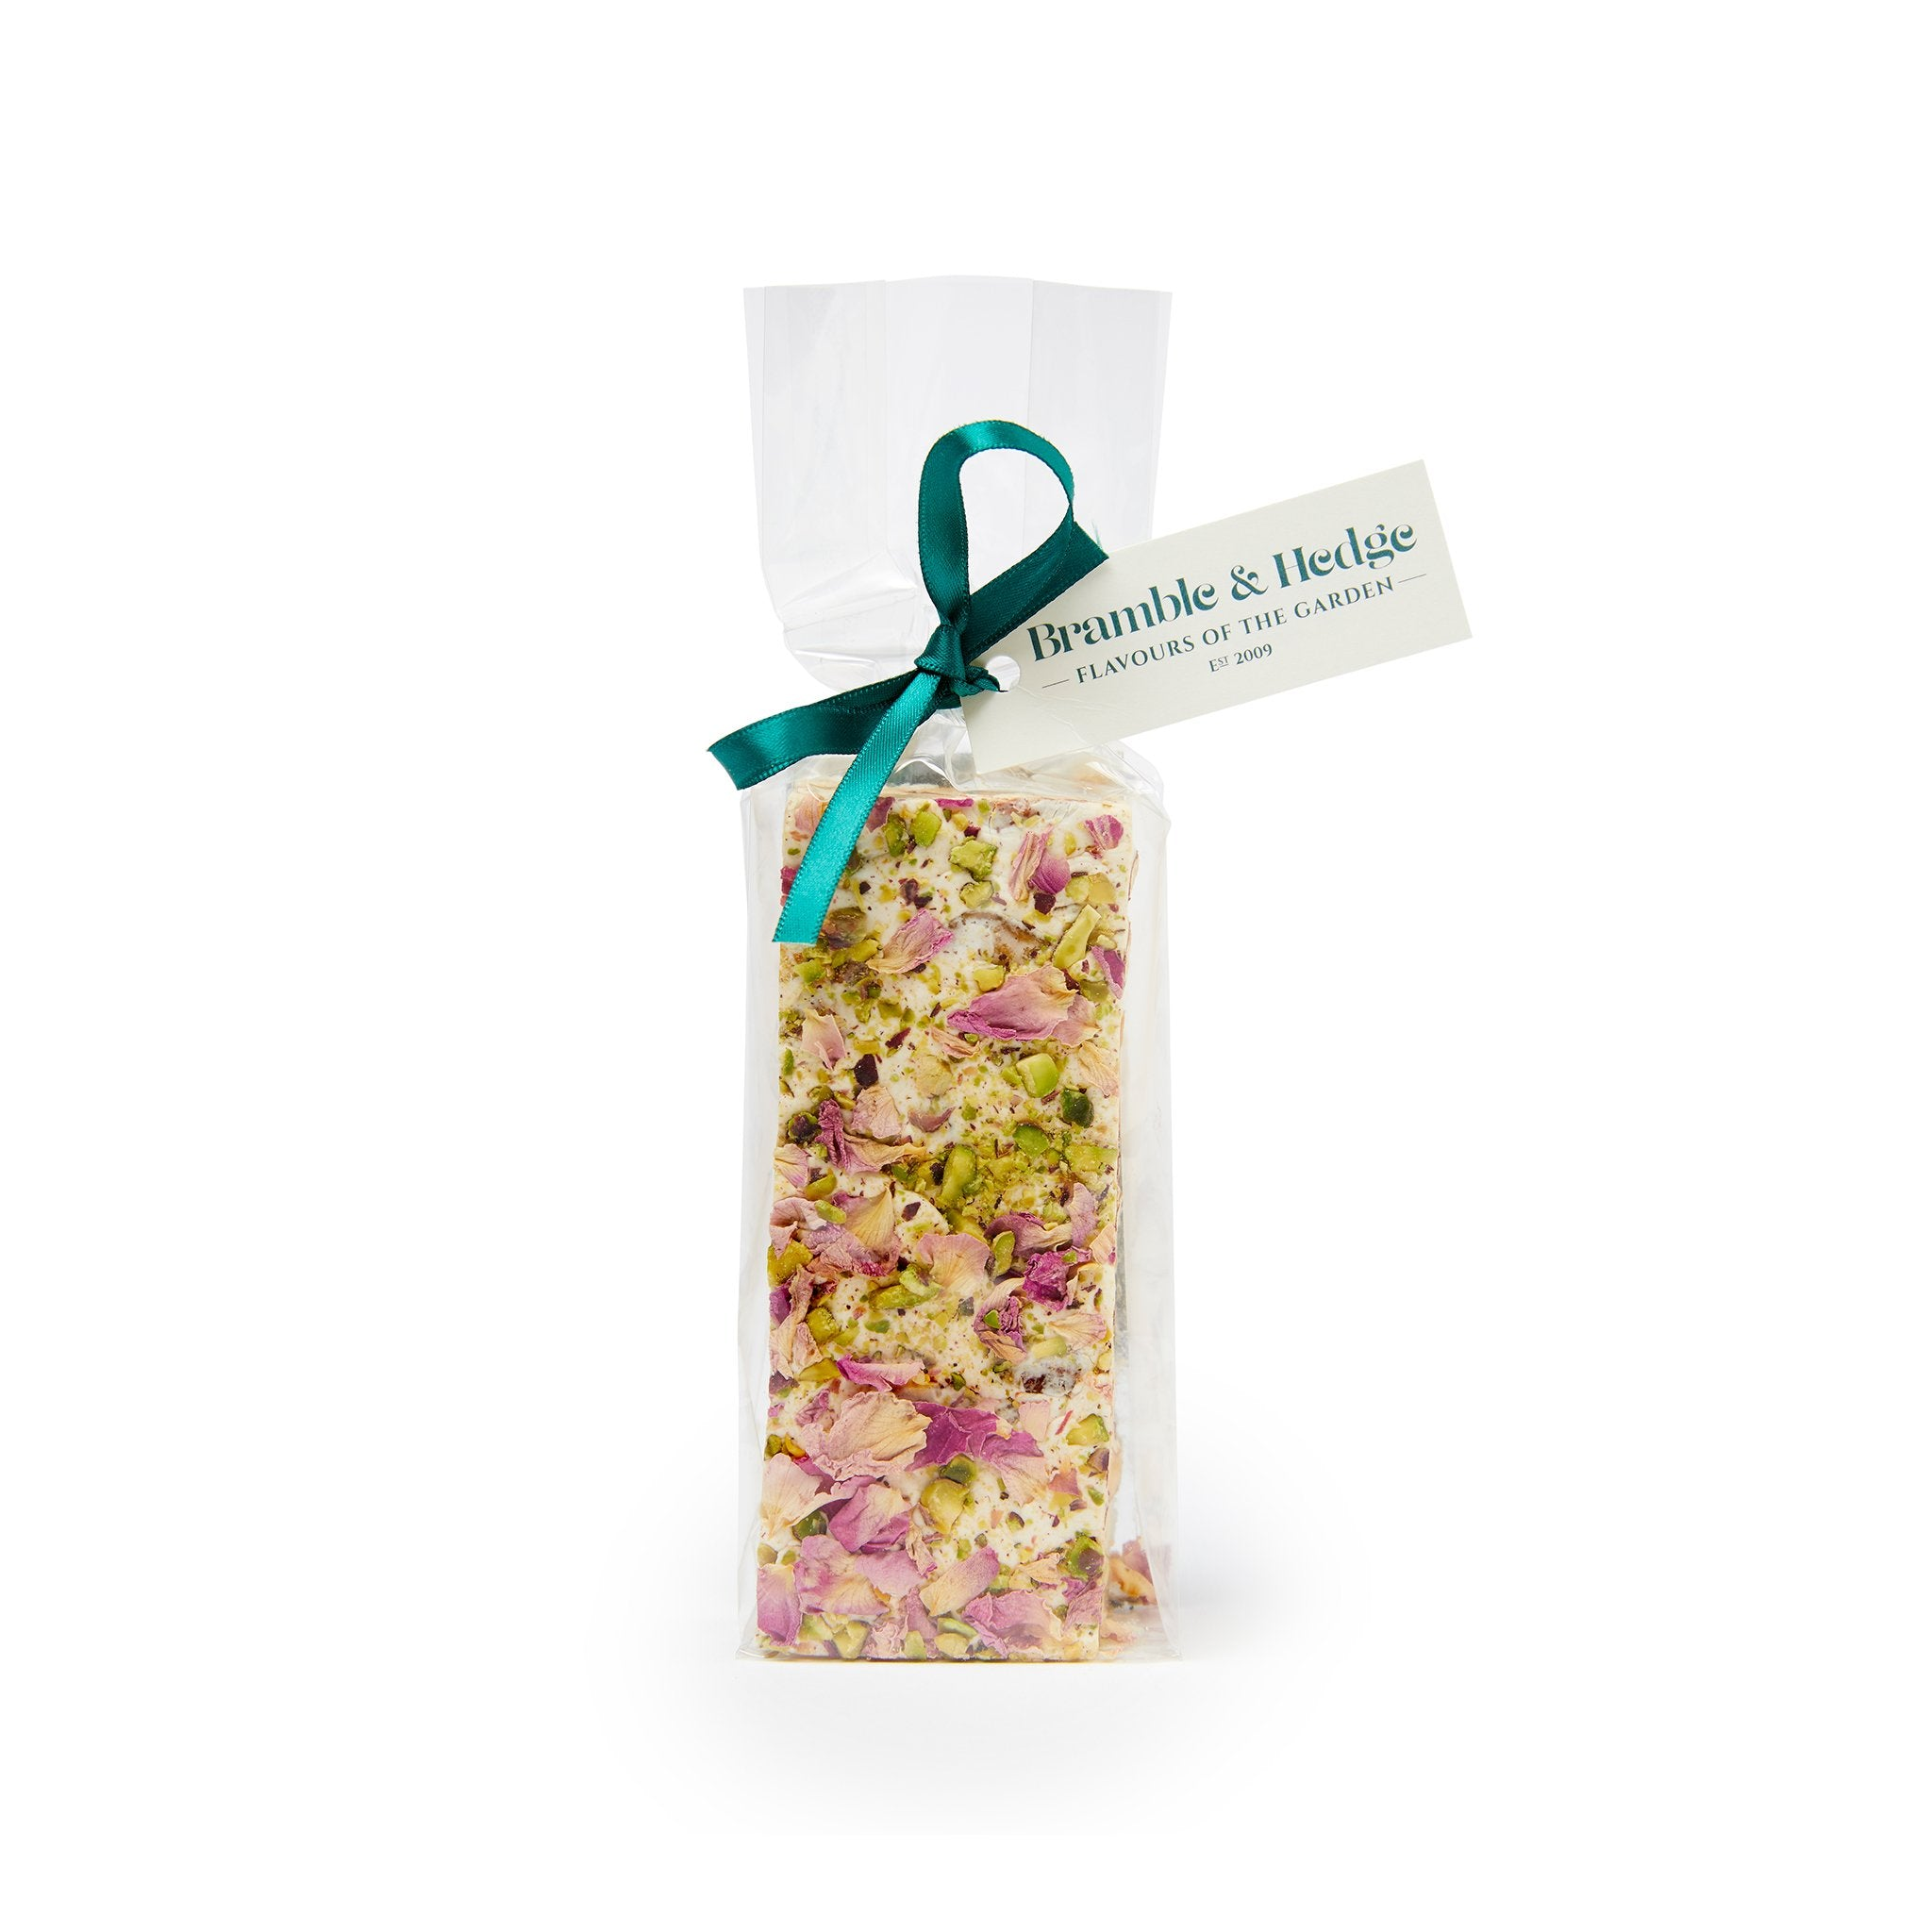 Bramble & Hedge Nougat